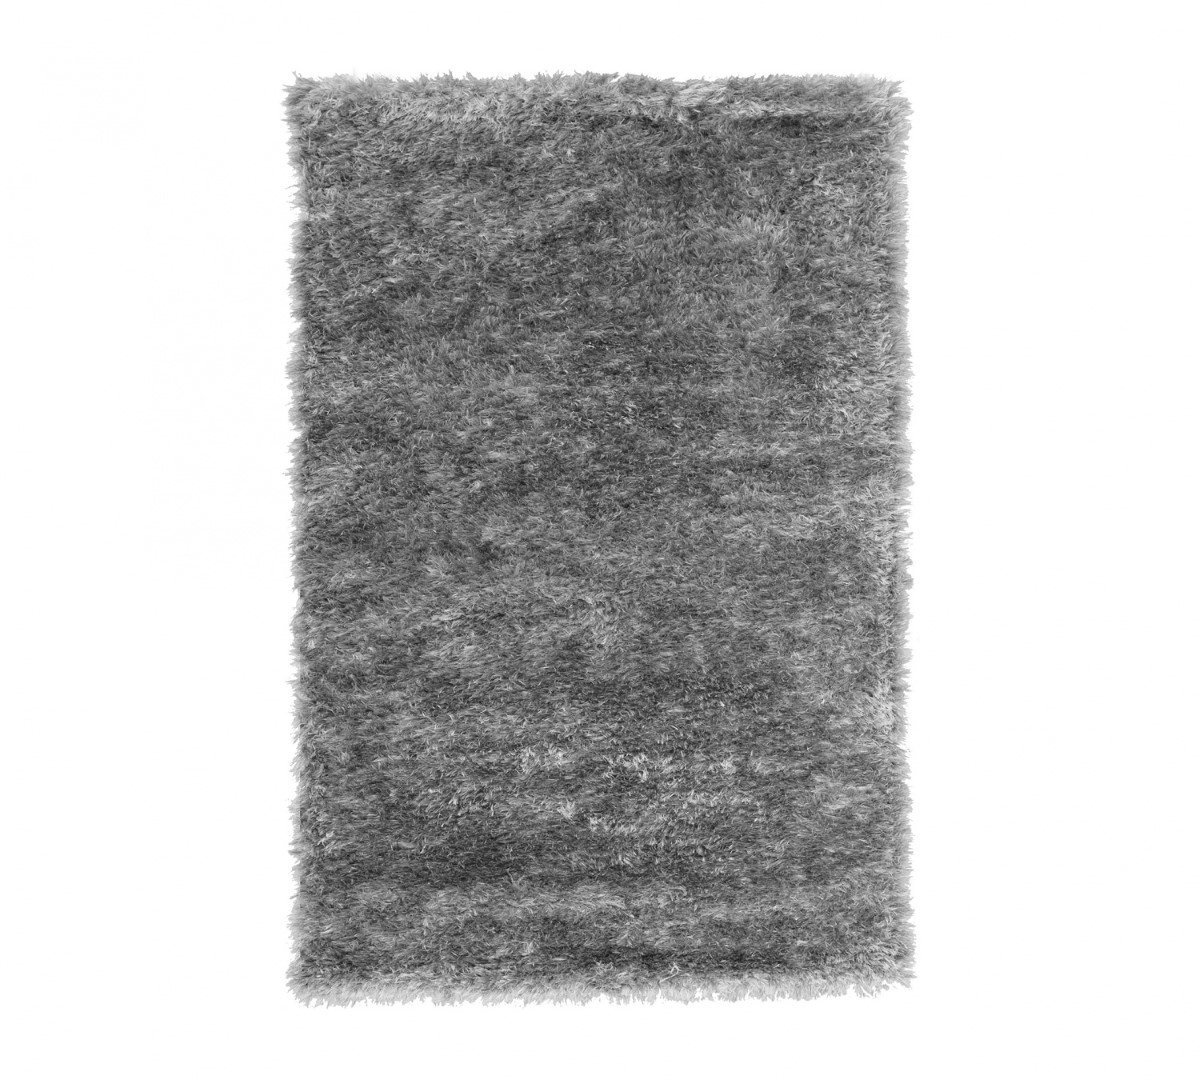 Shaggy-Medium-Carpet-grey1